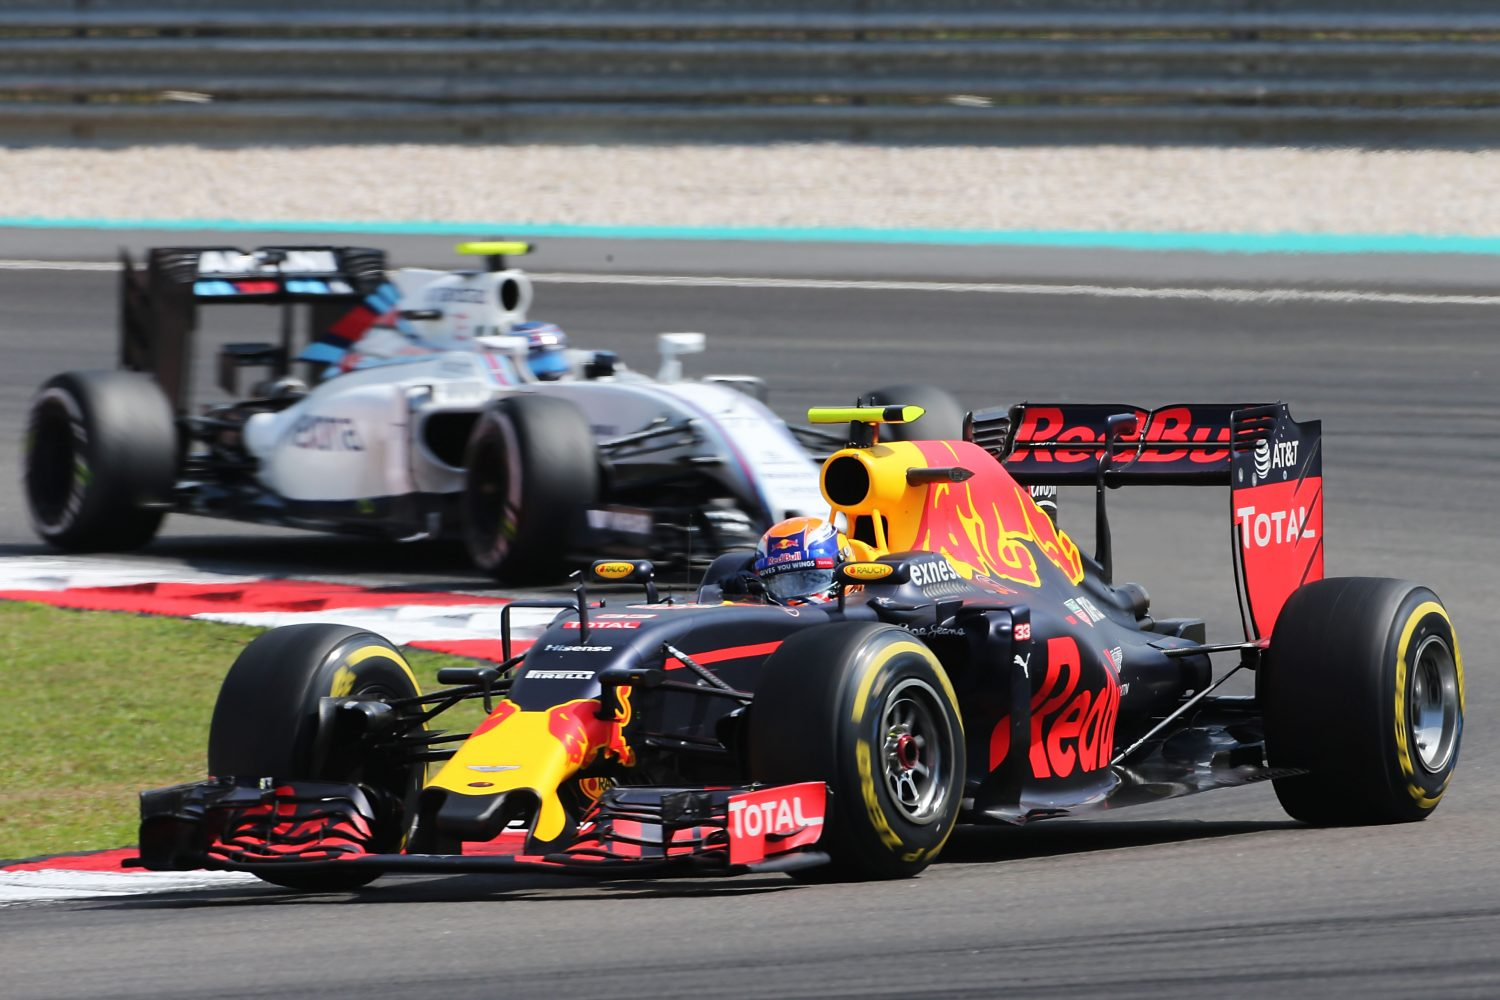 Formula One World Championship 2016, Round 16, Malaysian Grand Prix, Kuala Lumpur, Malaysia, Sunday 2 October 2016 - Max Verstappen (NLD) Red Bull Racing RB12.